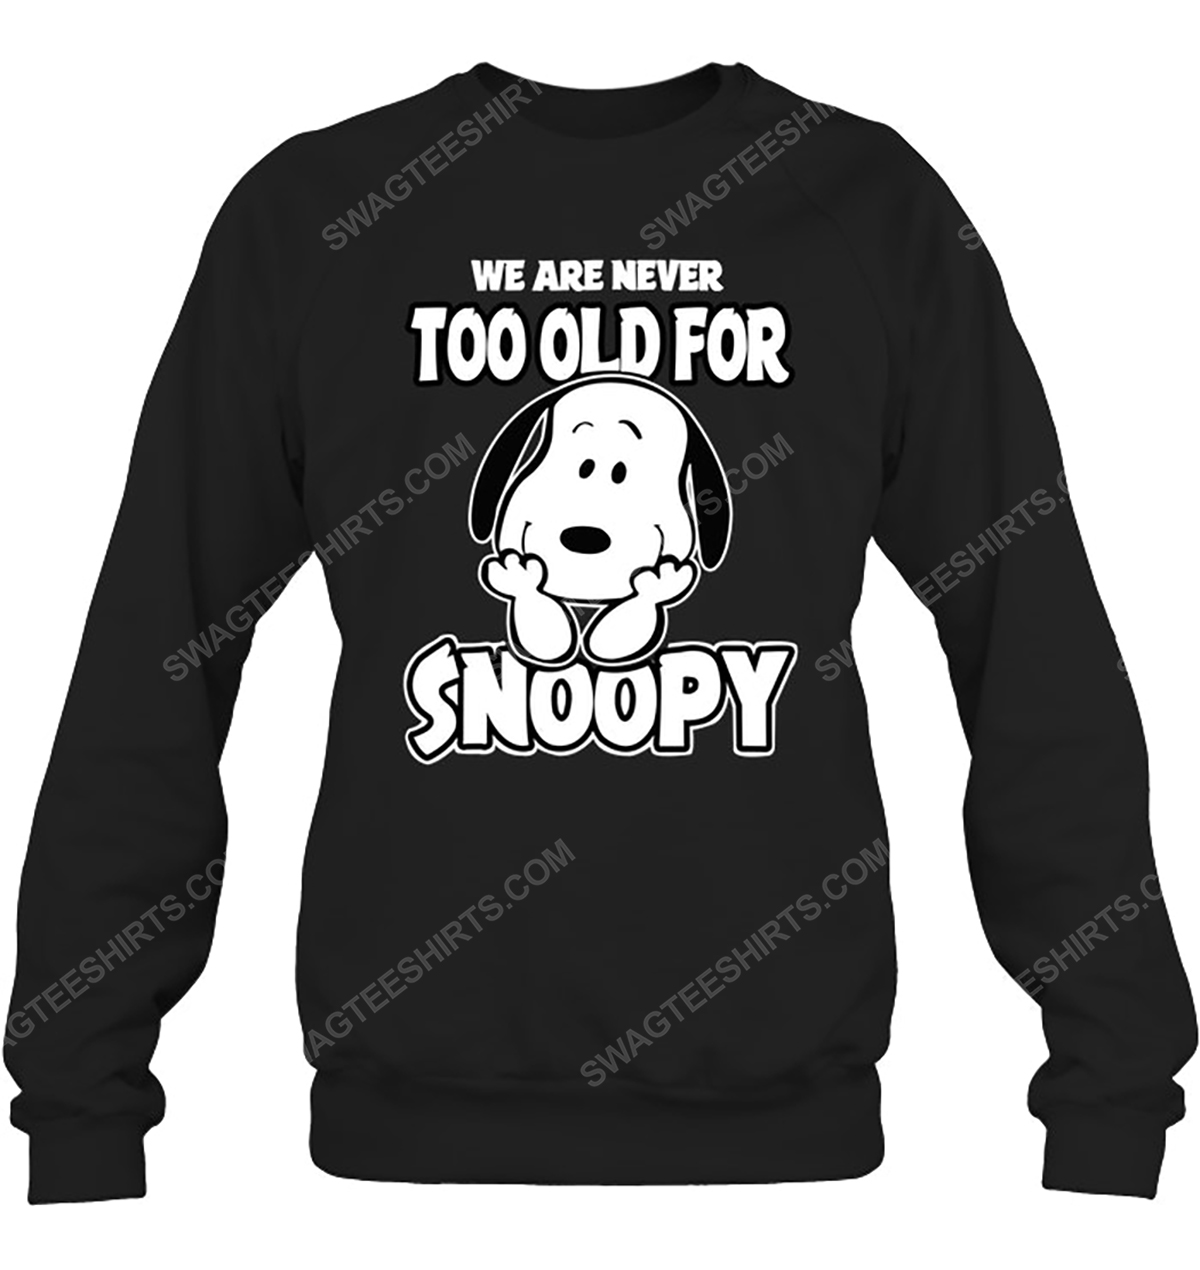 We are never too old for snoopy charlie brown sweatshirt 1